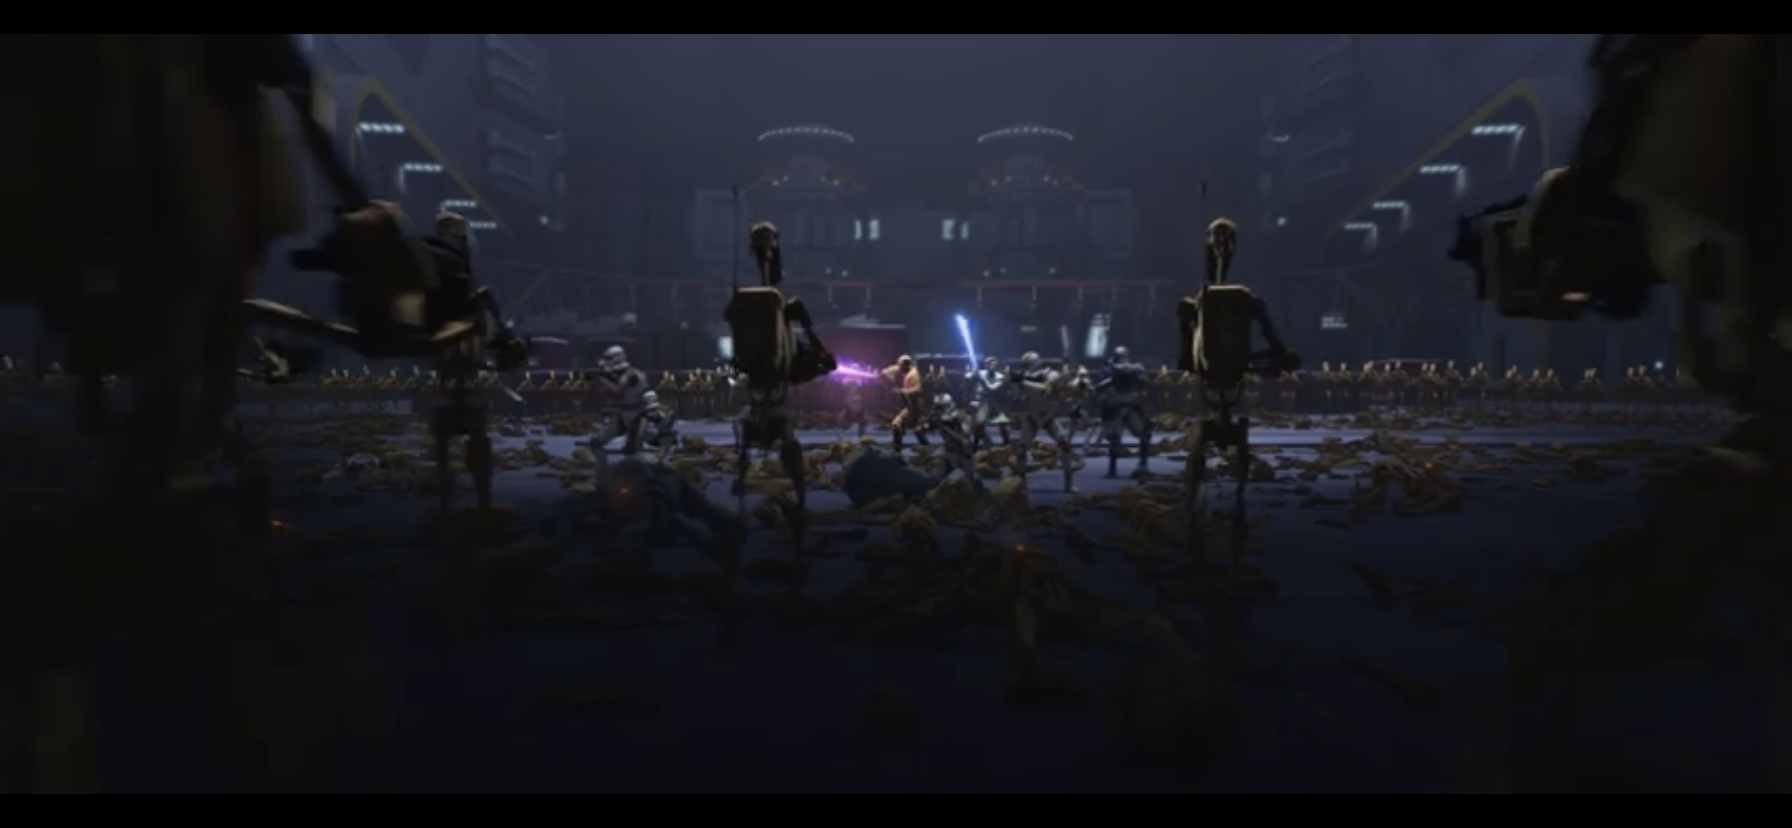 Obi-Wan & Mace Windu taking on an army of battle droids